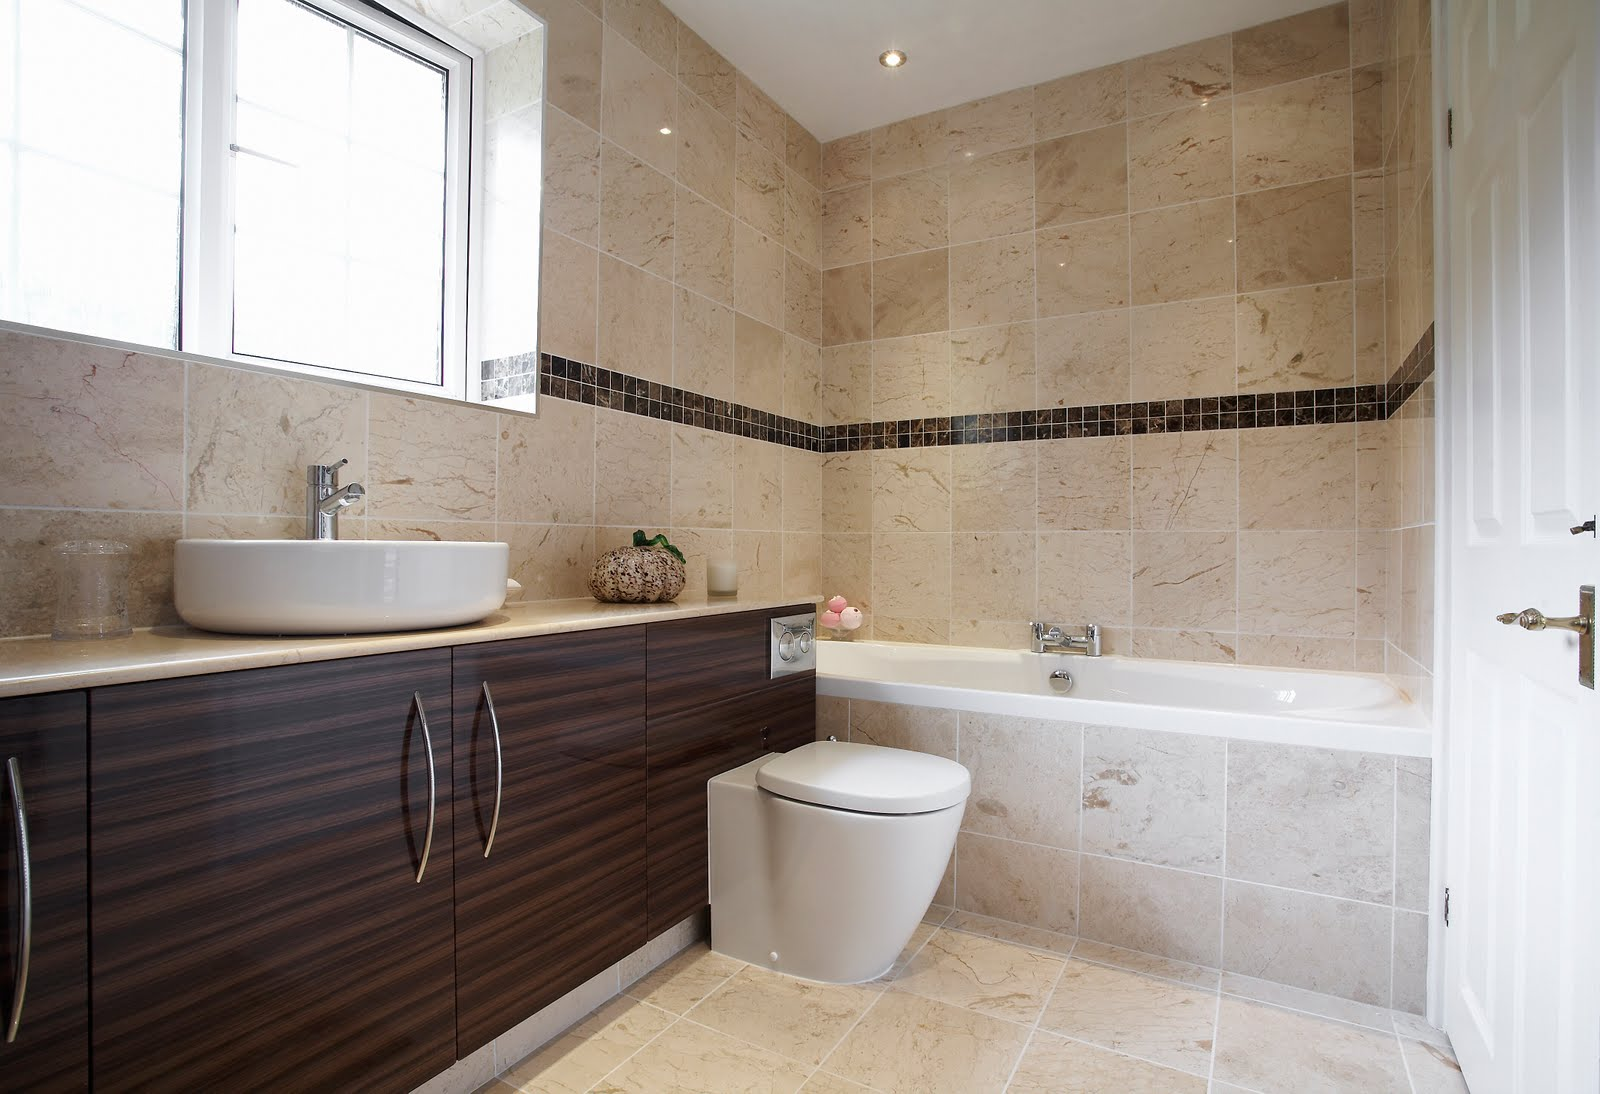 Cymru kitchens ltd cymru kitchens bathrooms for Bathroom designs gallery